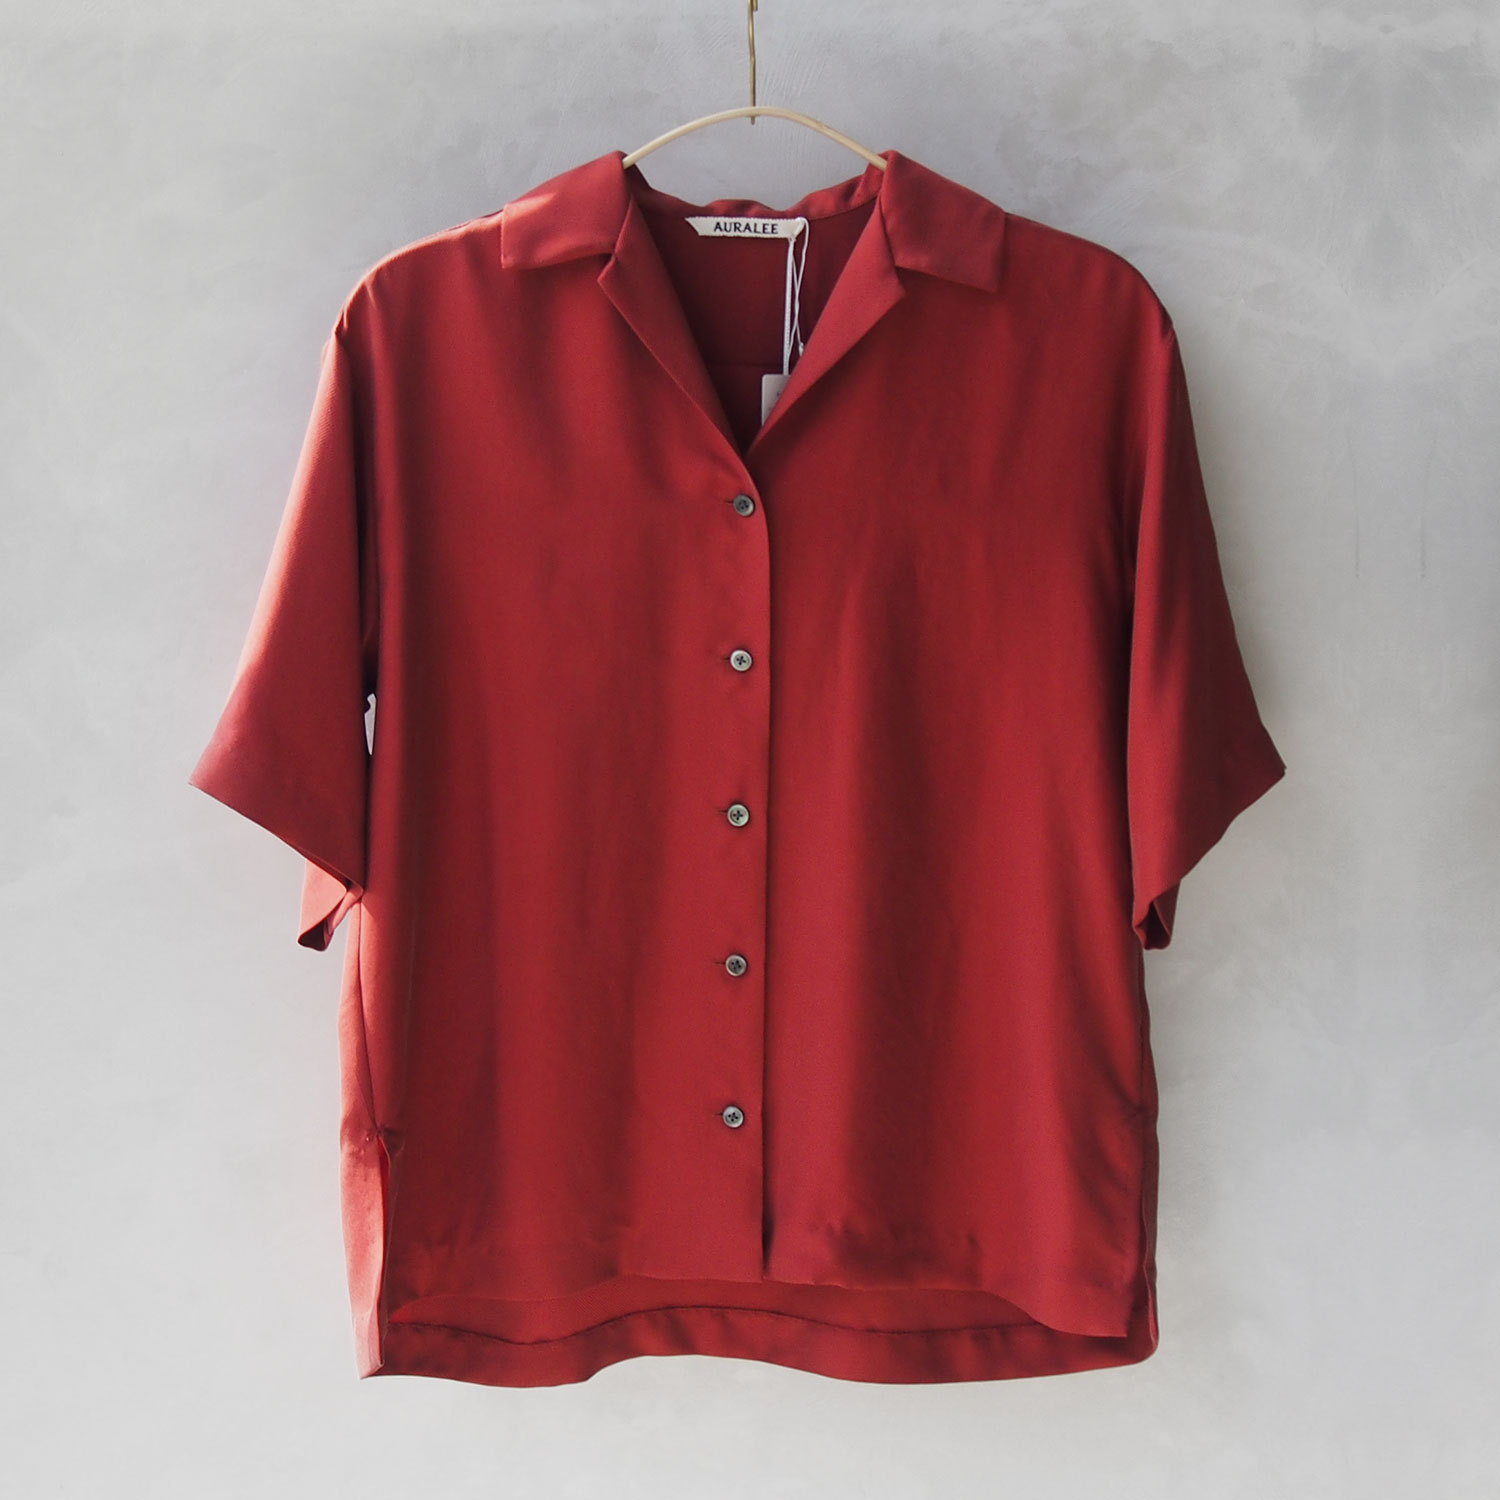 AURALEE SILK BRUSHED TWILL HALF SLEEVED SHIRTS RED